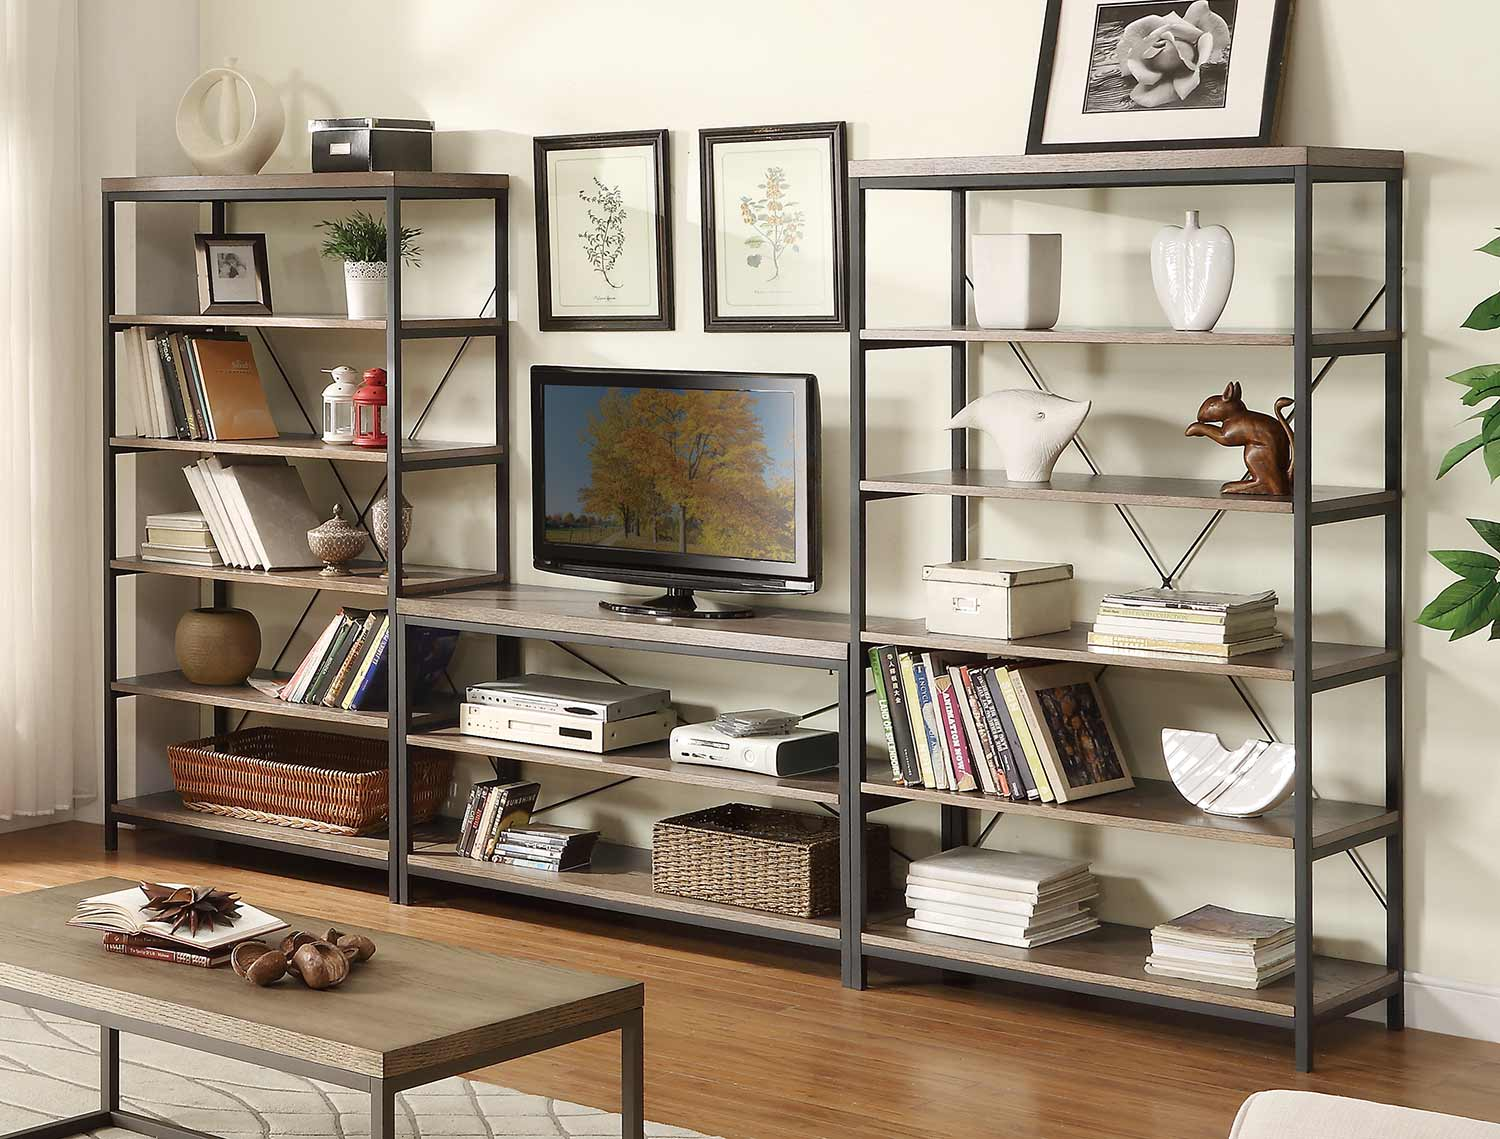 Homelegance Furniture: Spacious Entertainment Units for Your Home